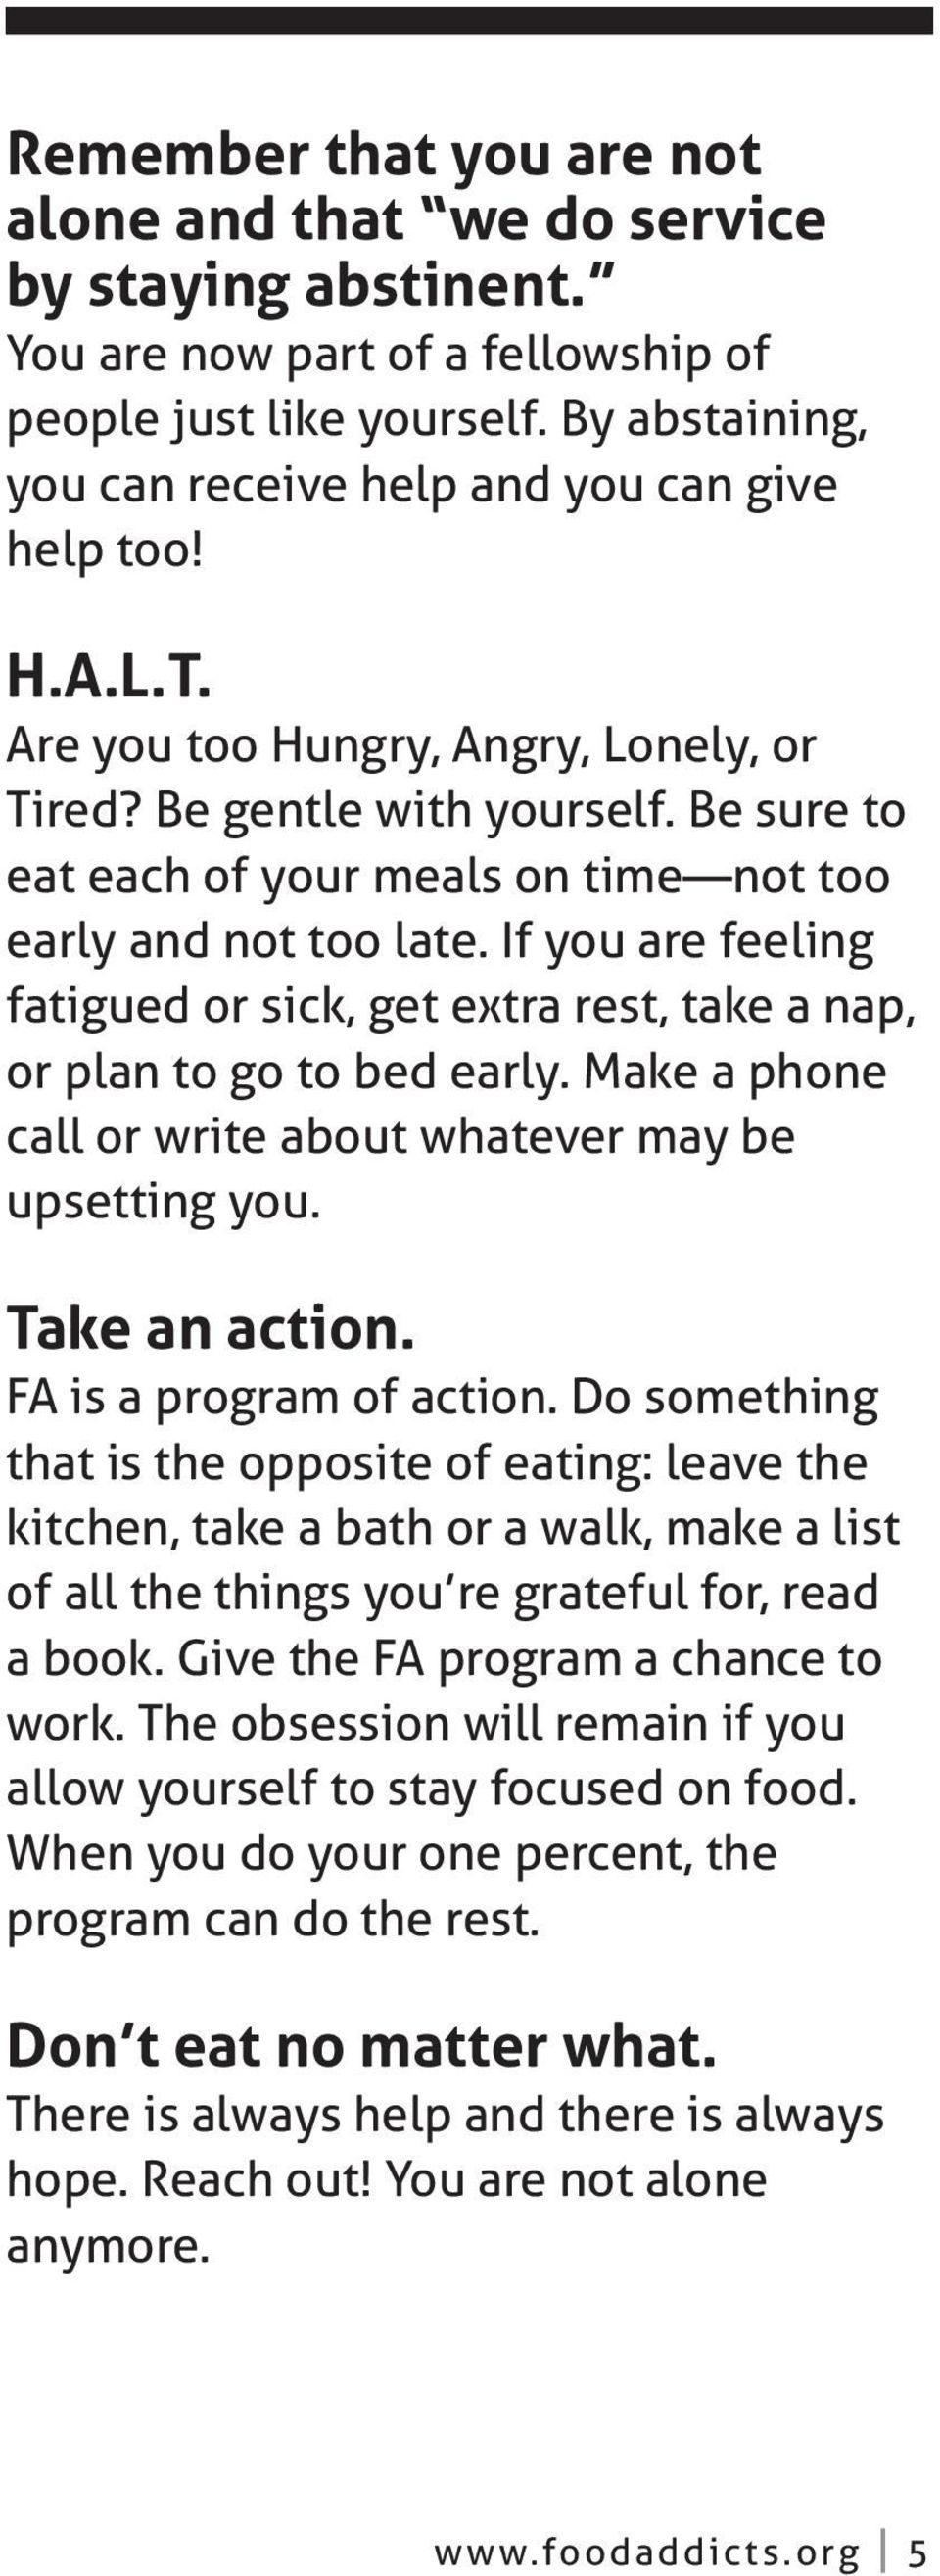 Be sure to eat each of your meals on time not too early and not too late. If you are feeling fatigued or sick, get extra rest, take a nap, or plan to go to bed early.